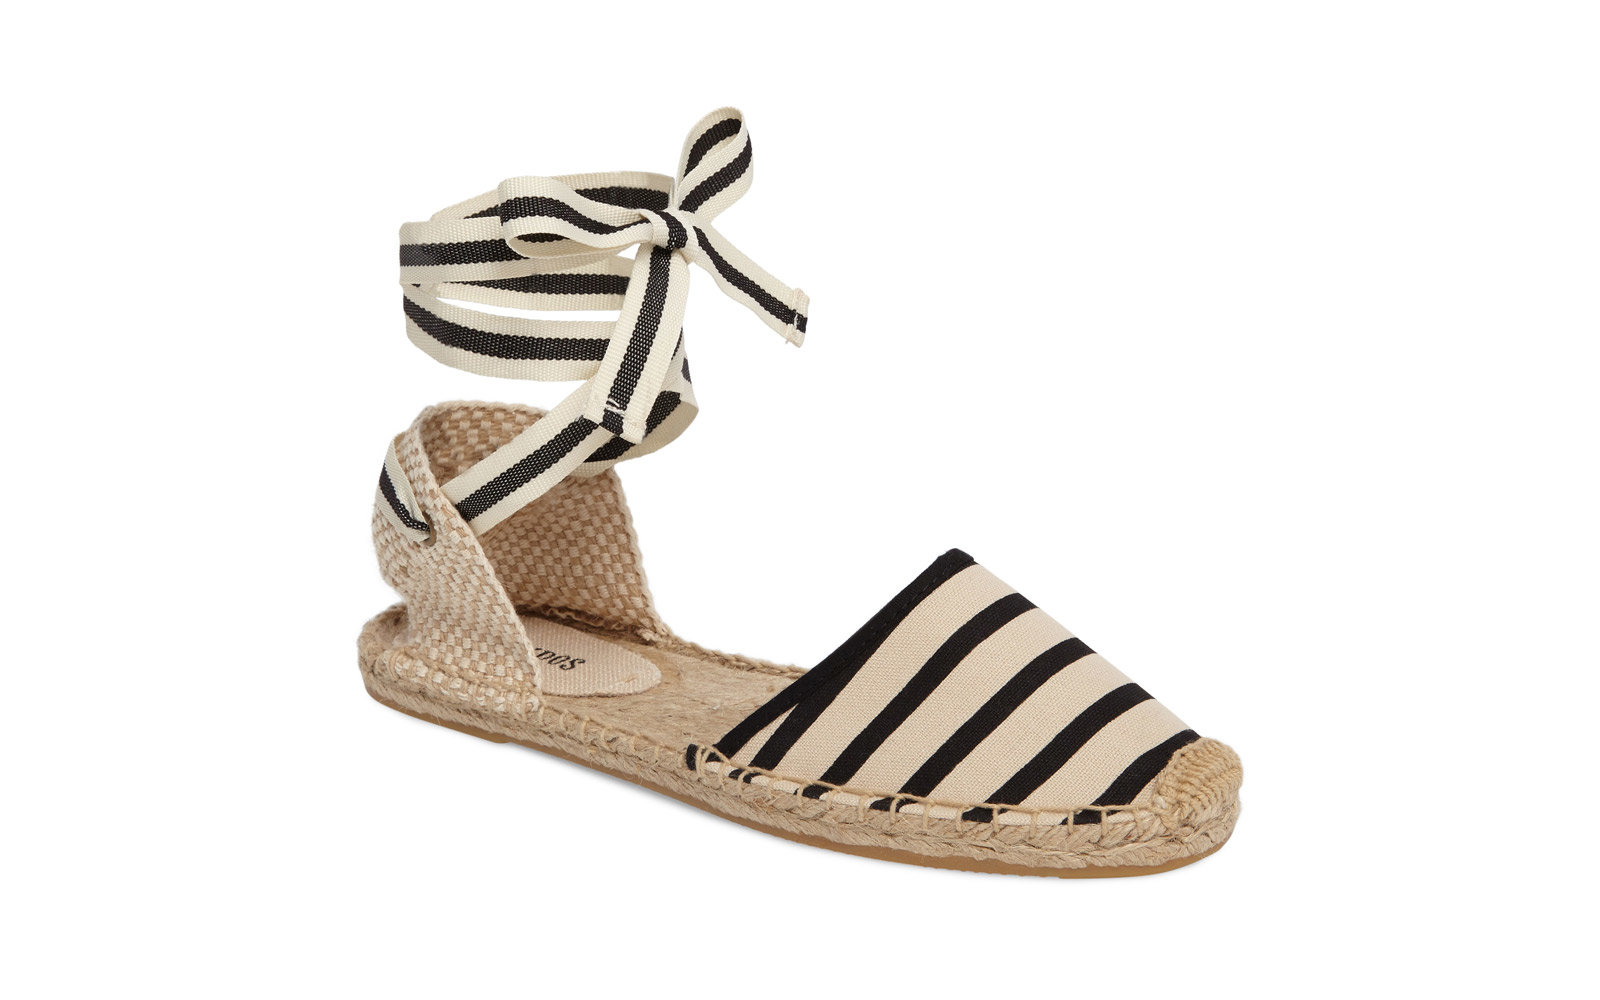 Soludos Lace-up Espadrille Sandals